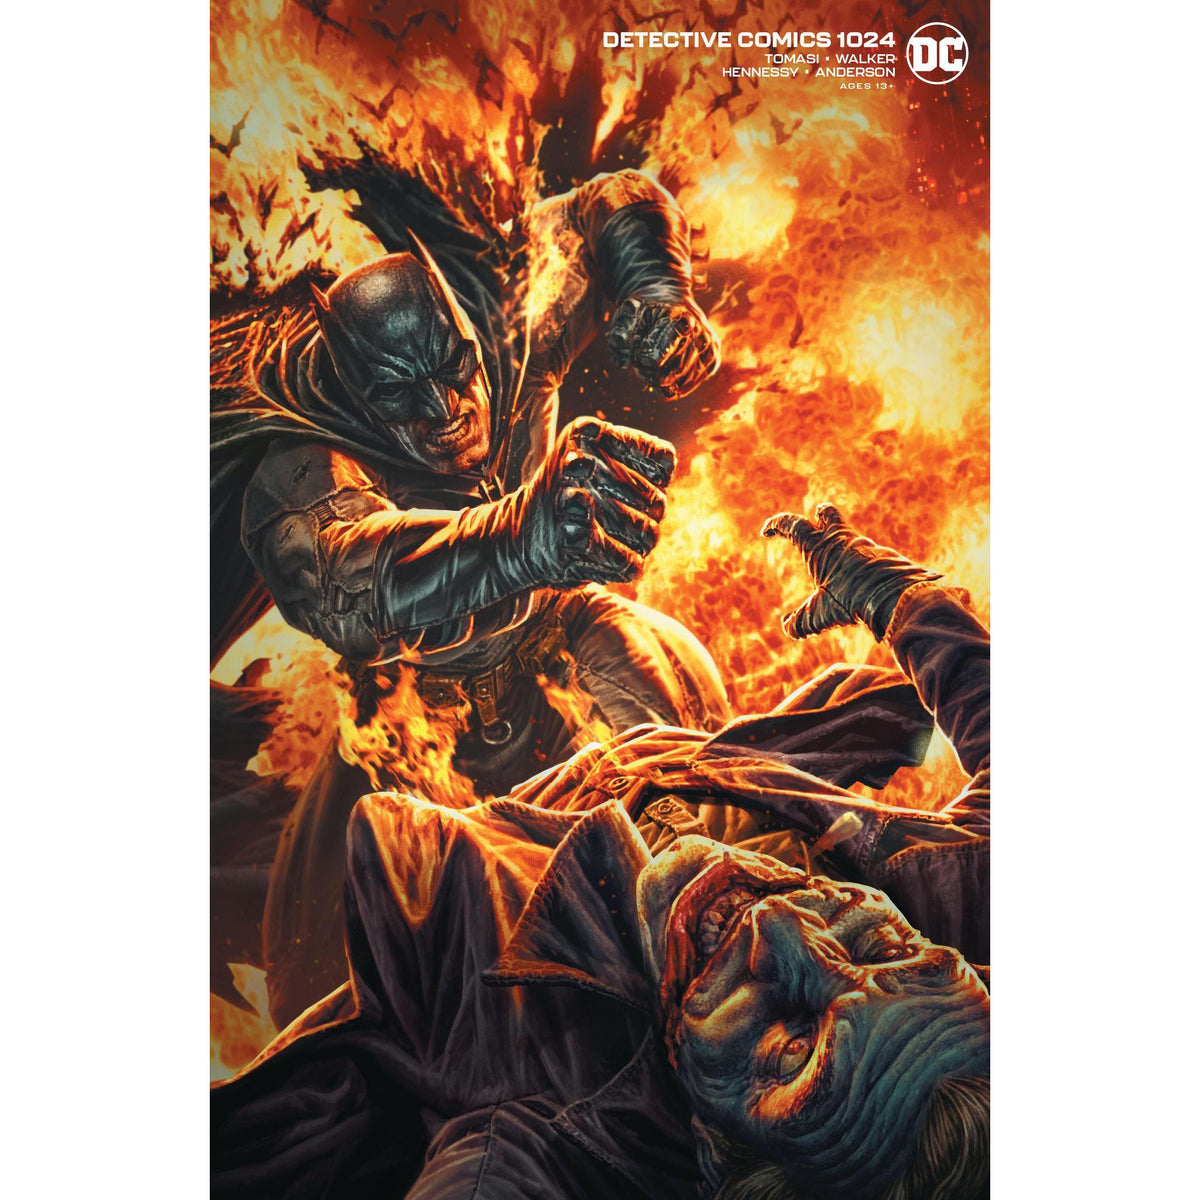 DETECTIVE COMICS #1024 - JOKER WAR CARD STOCK LEE BERMEJO VARIANT COVER B